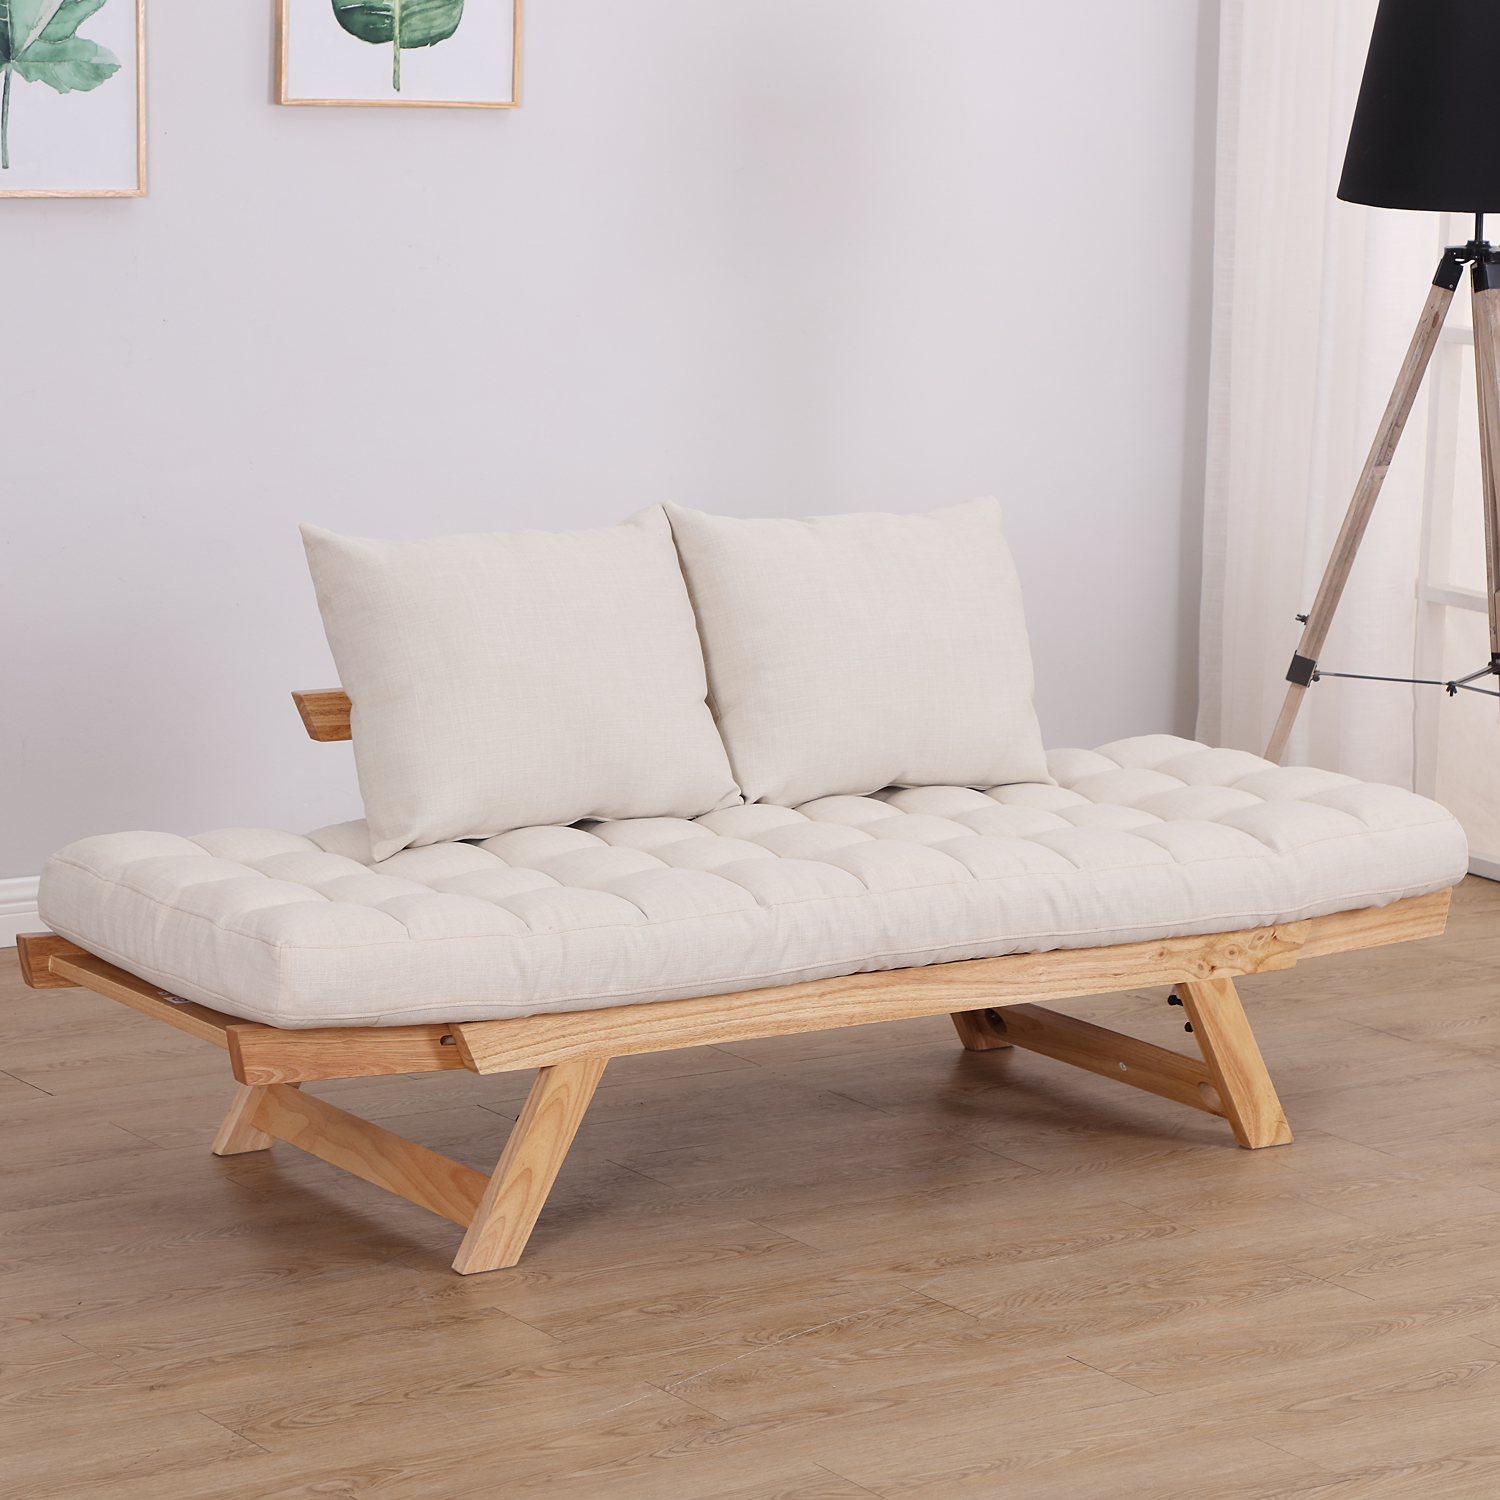 Convertible-Sofa-Bed-Sleeper-Couch-Chaise-Lounge-Chair-Adjustable-Padded-Pillow thumbnail 42